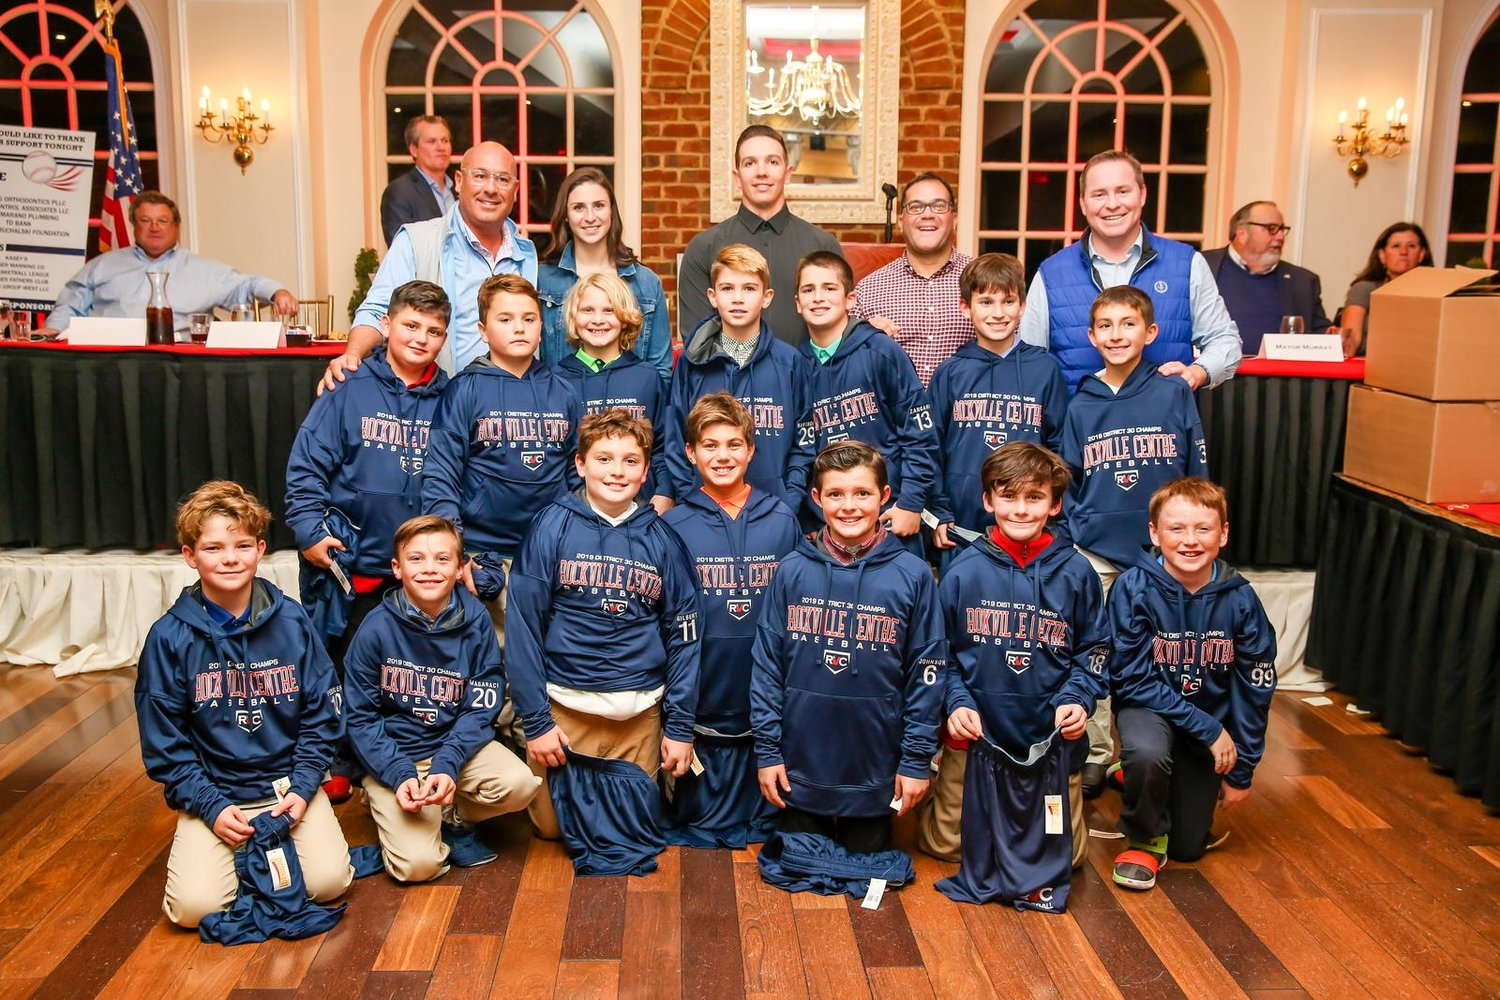 New York Yankees pitcher Chad Green, back row center, was a special guest for RVC Little League's 2019 awards ceremony.